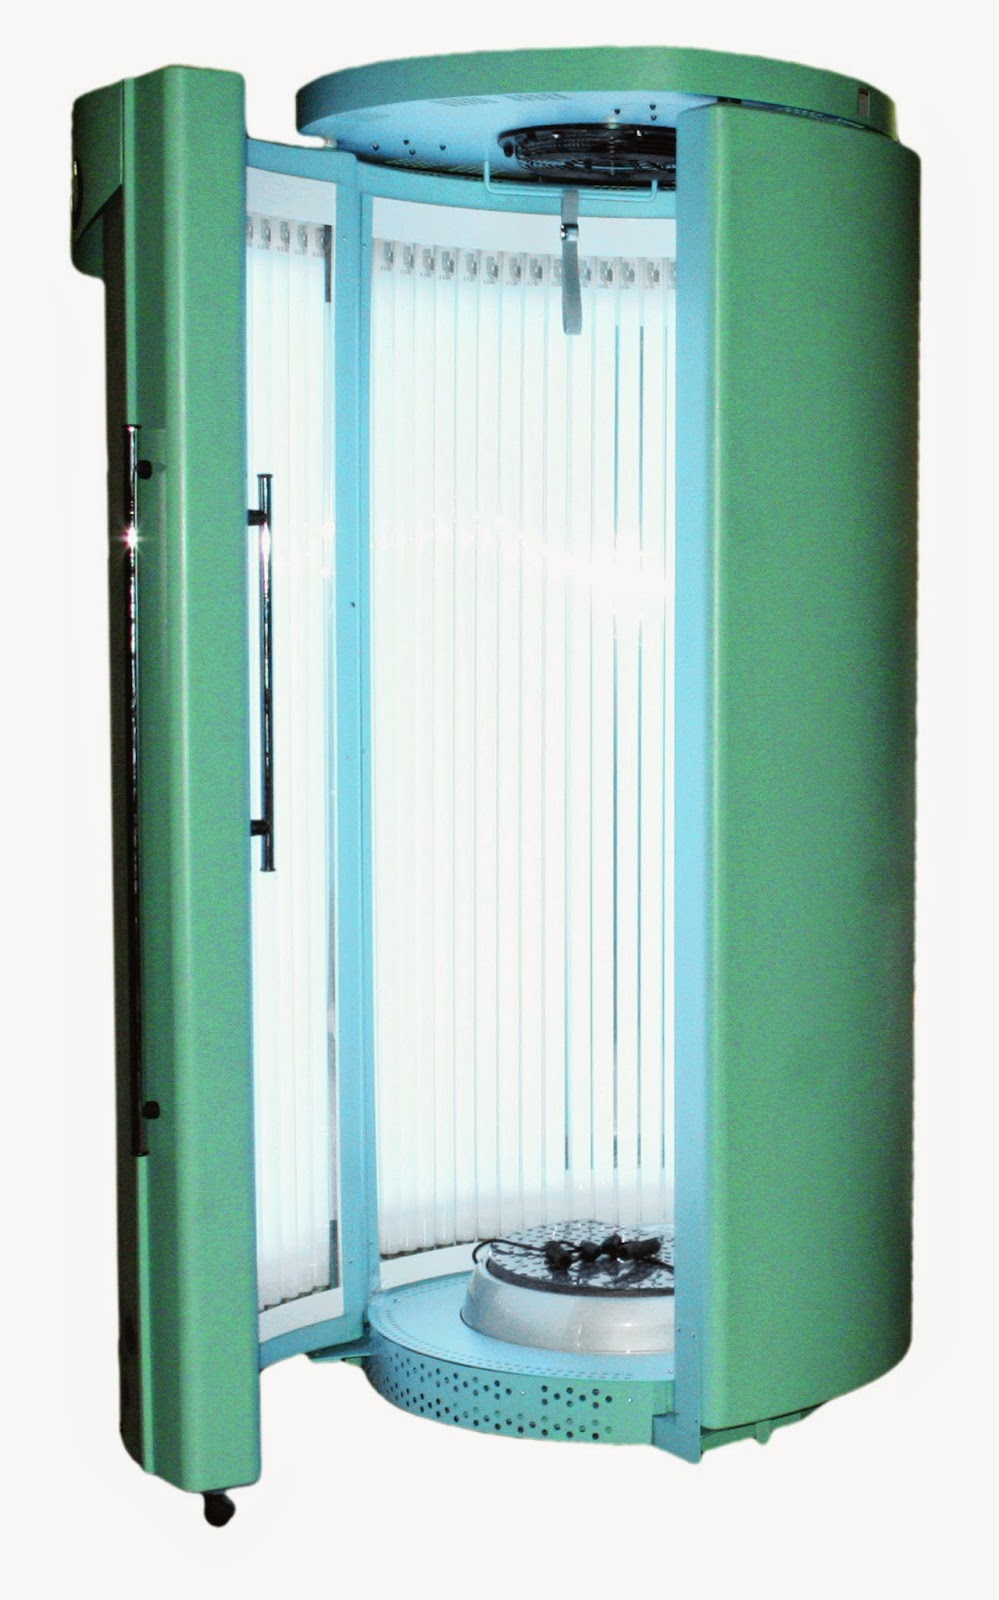 SE4 - Sunbed - cabin - Cab 54 tubes 100W - electronical ballasts - tubes 190cm